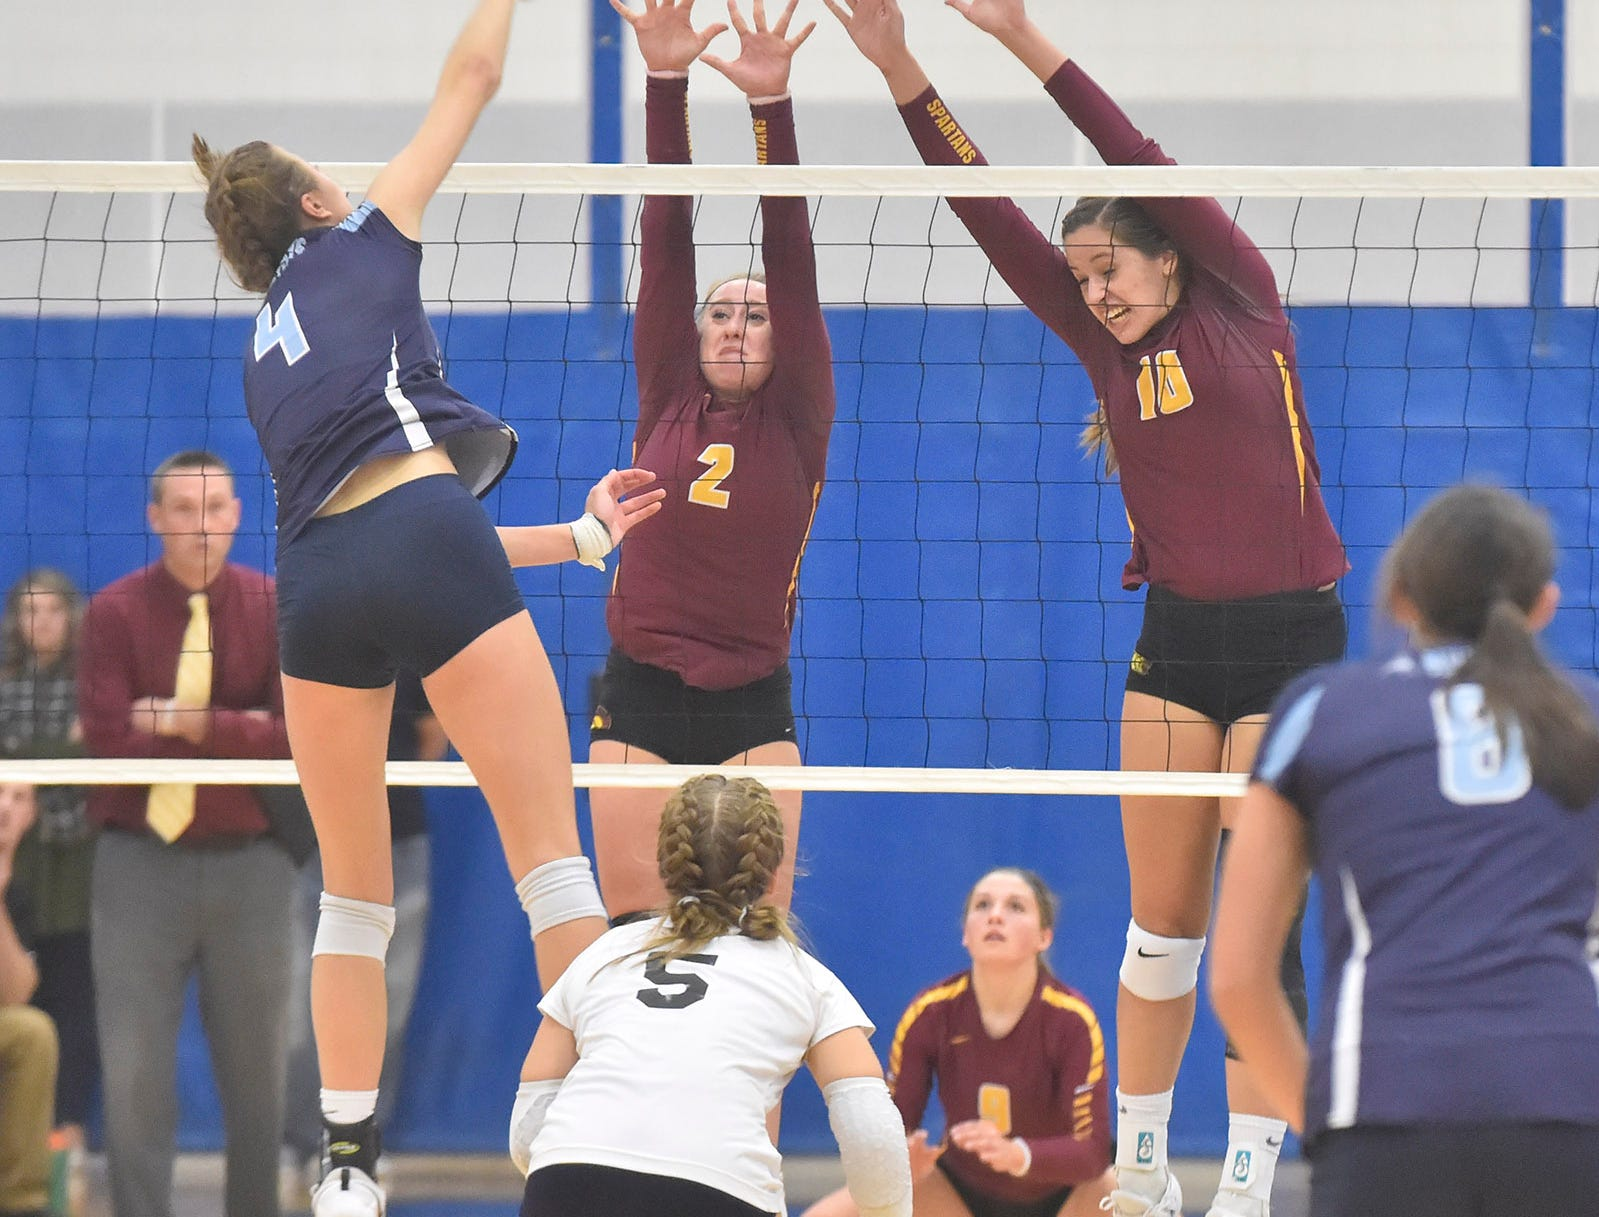 Rebekah Day, left, and Holly Baierl of Luxemburg-Casco at the WIAA Division 2 sectional final against Little Chute on Oct. 27, 2018, in Wrightstown. Tina M. Gohr/USA TODAY NETWORK-Wisconsin